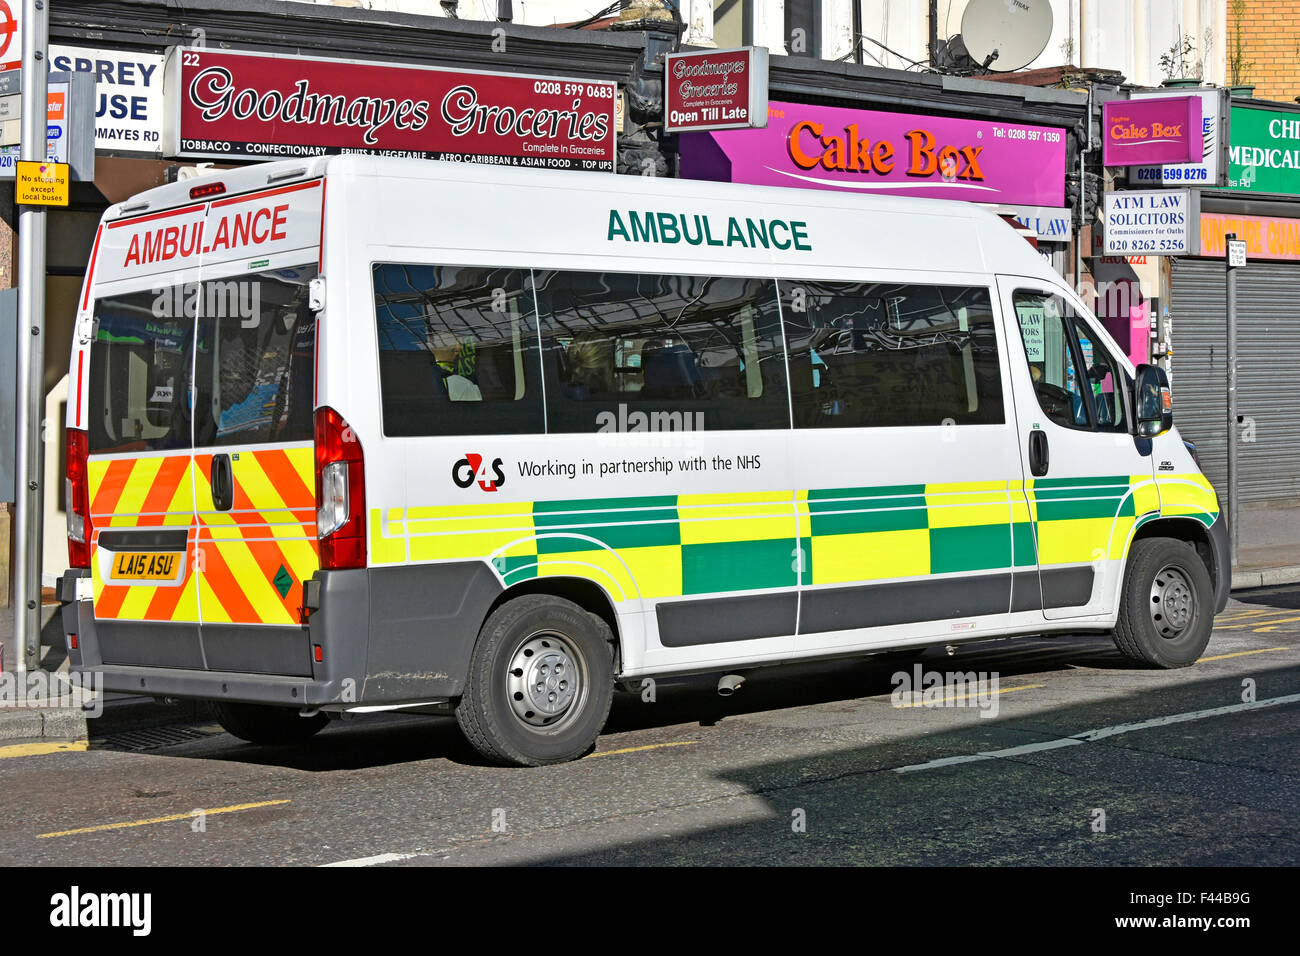 G4S working in partnership with the NHS by providing out patient ambulance transport services to hospitals seen Stock Photo